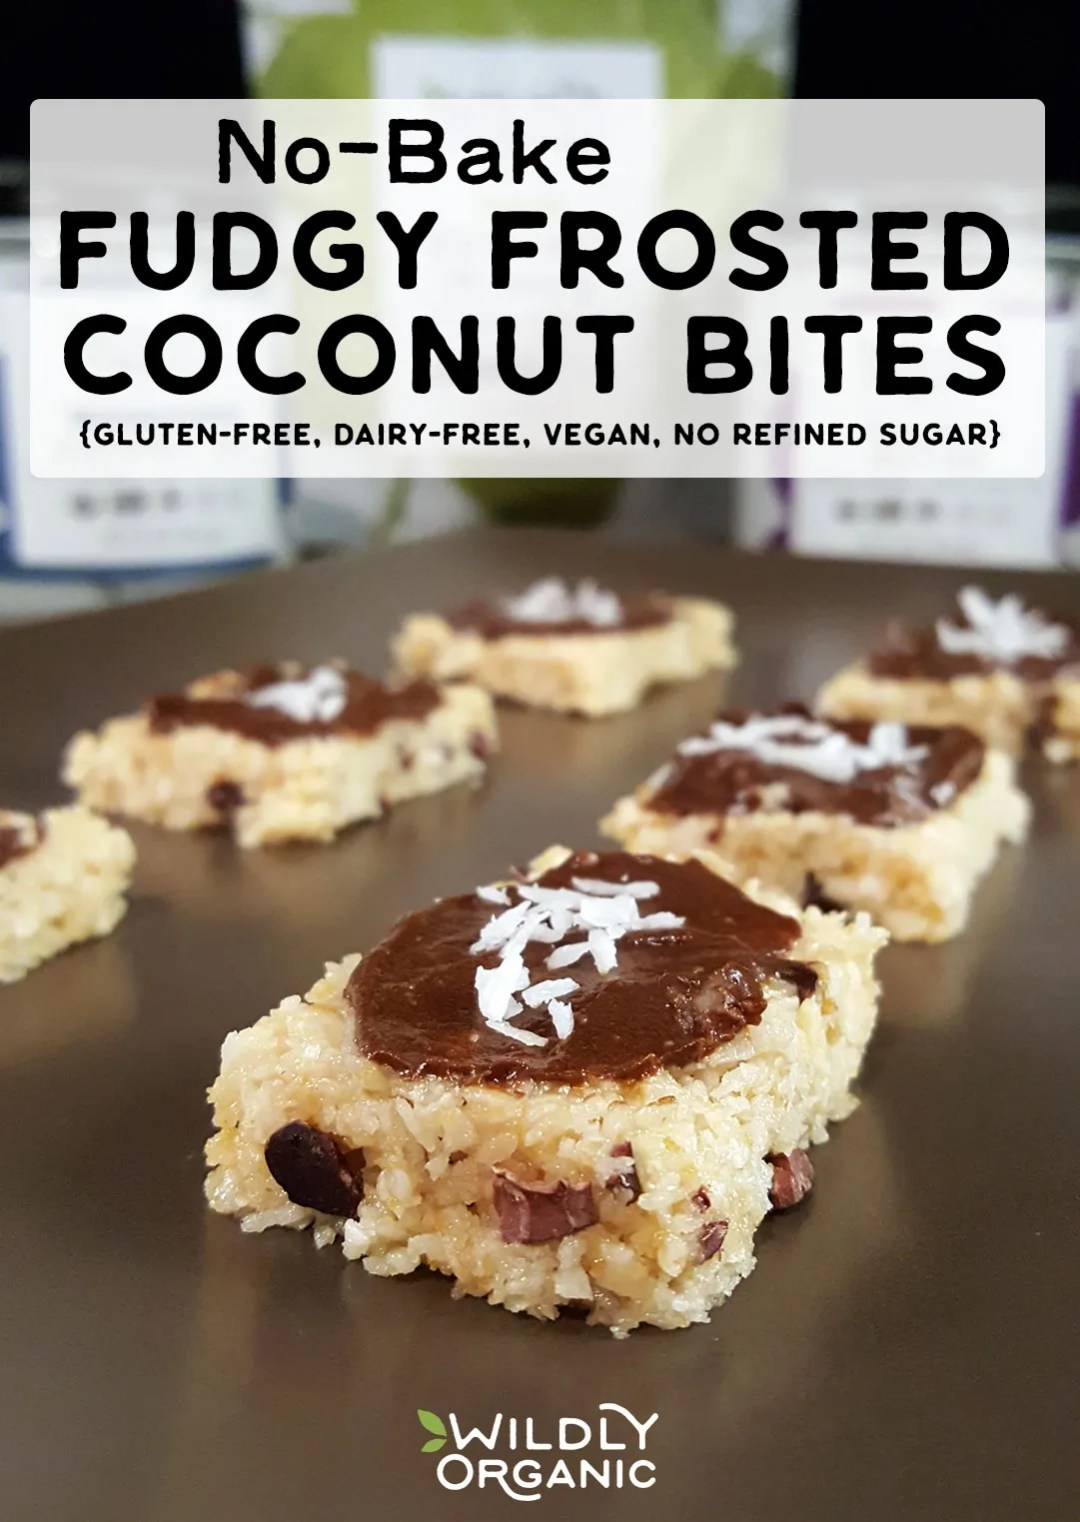 Photo of No-Bake Fudgy Frosted Coconut Bites